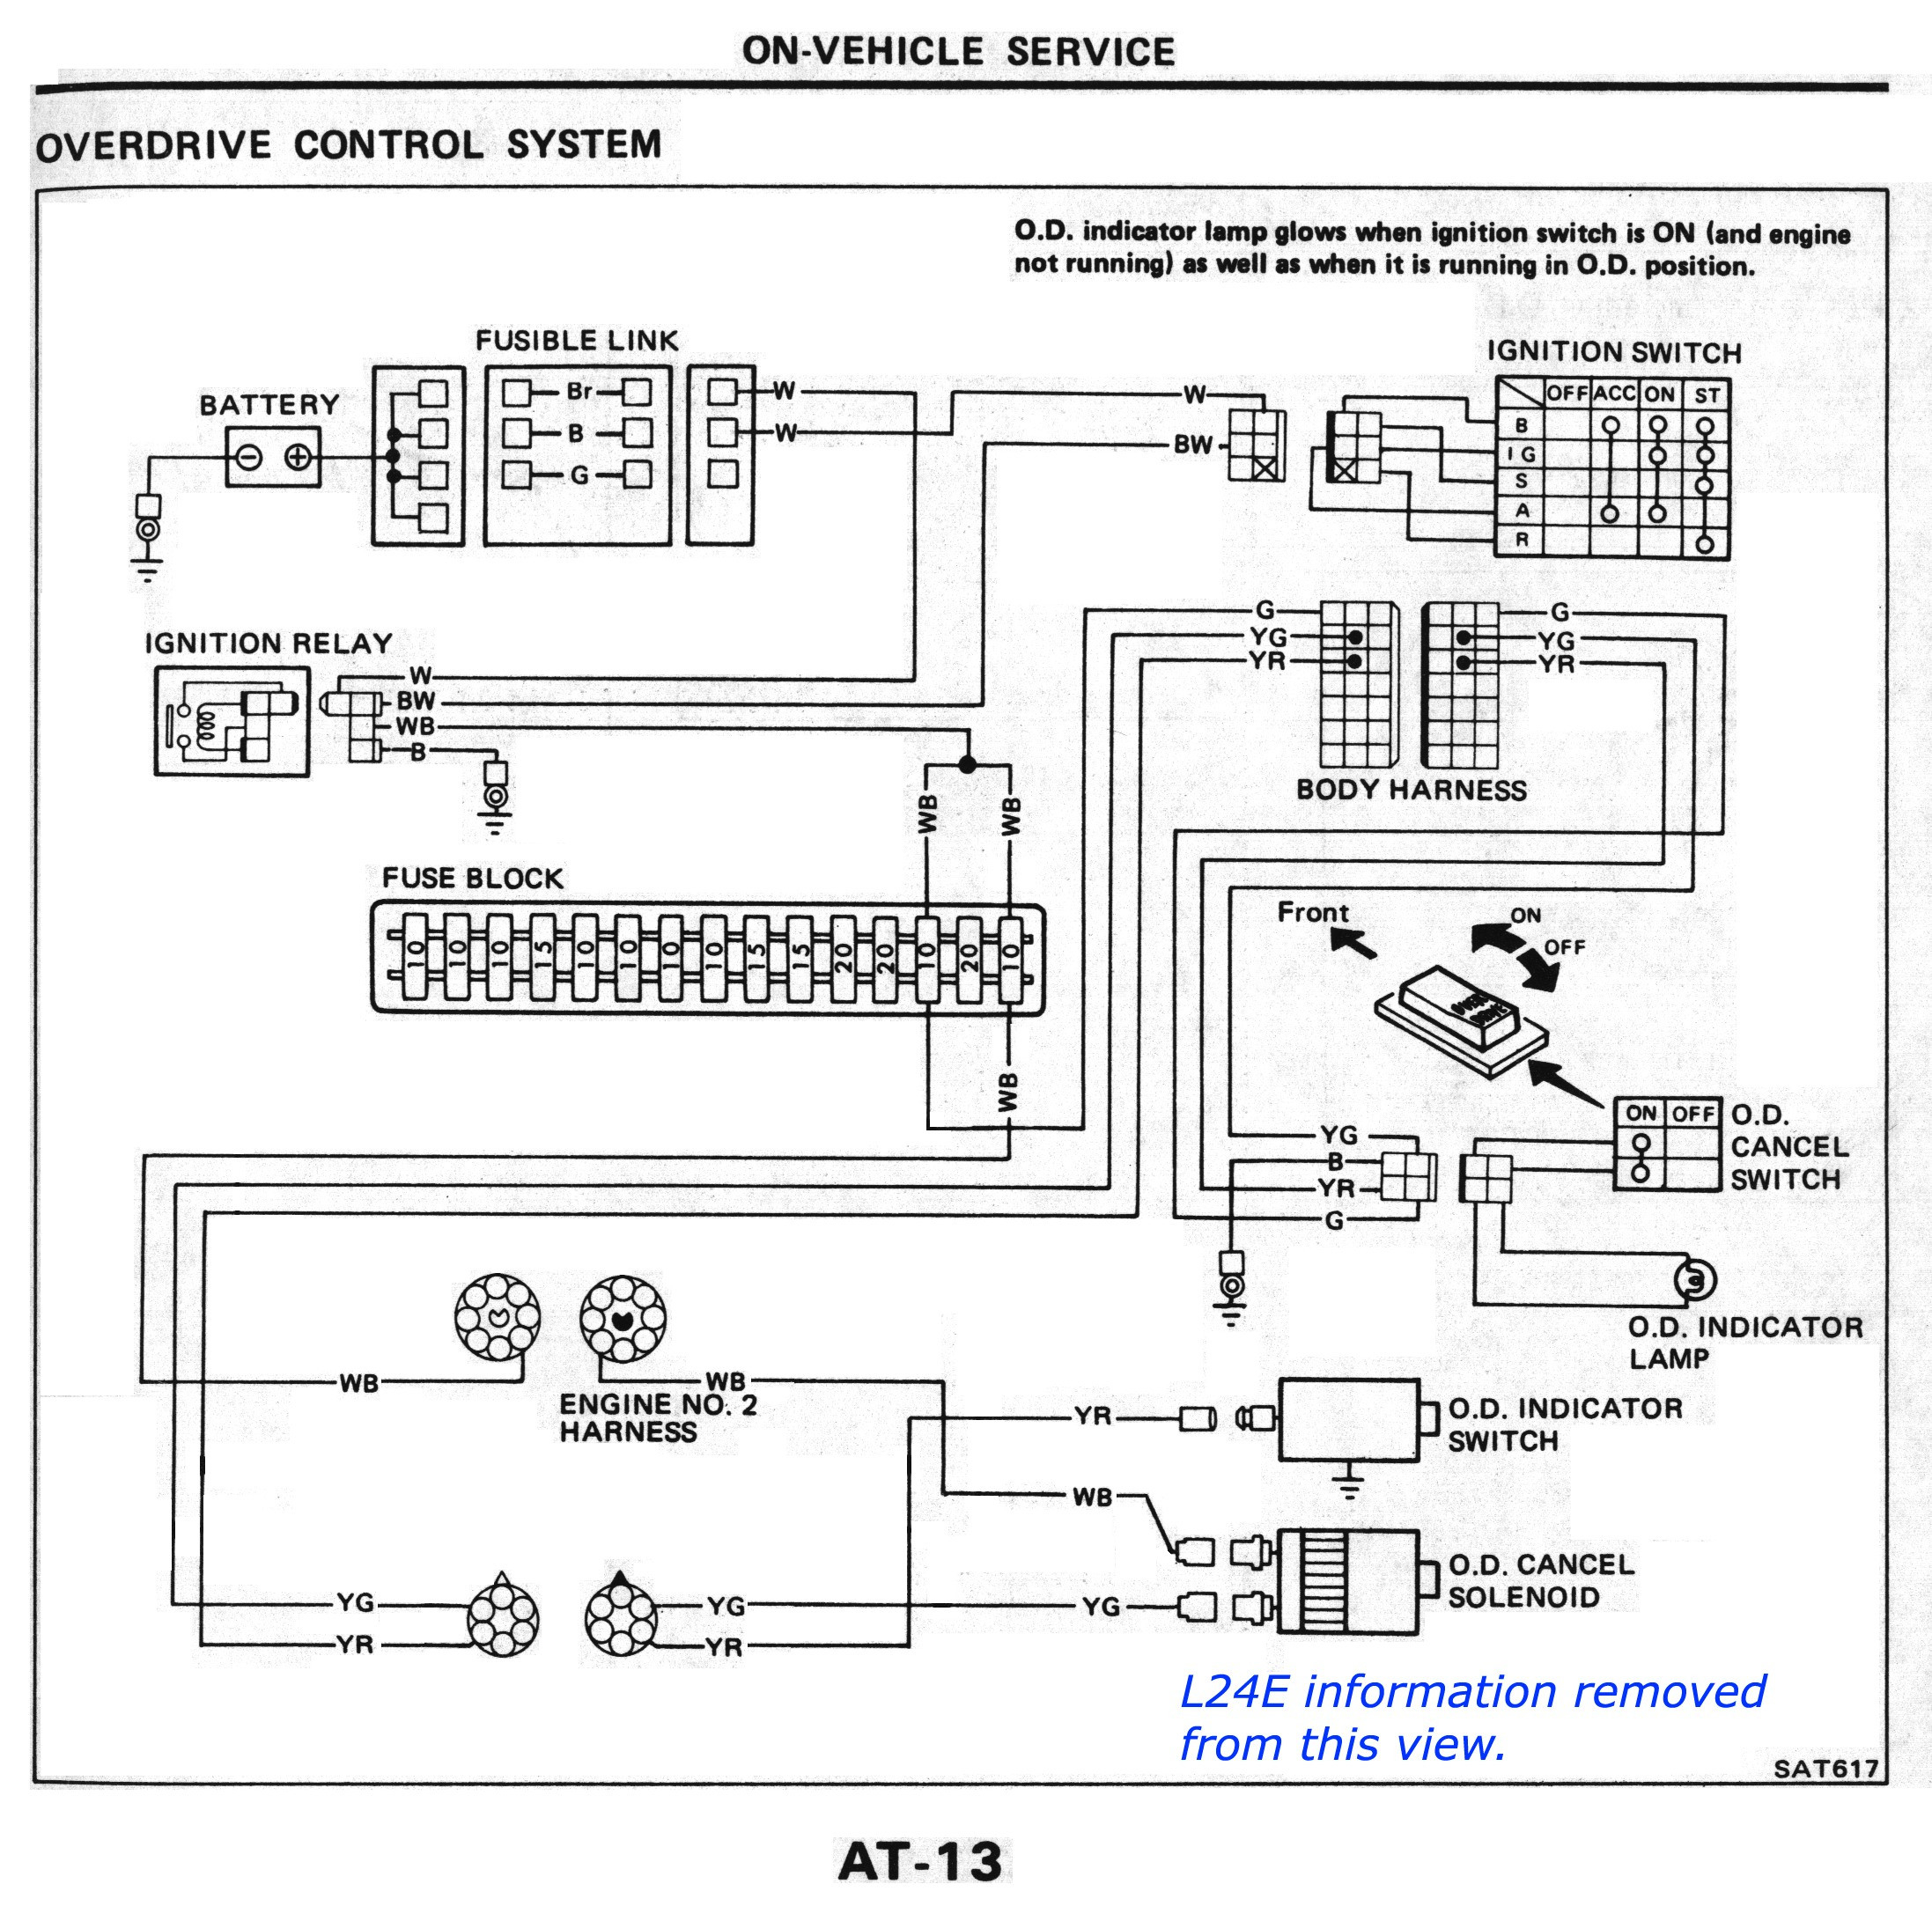 nissan ud wiring diagram Collection-W140 Ac Wiring Diagram Fresh Nissan sel Forums • View Topic L4n71b Od At 1983 84 12-h